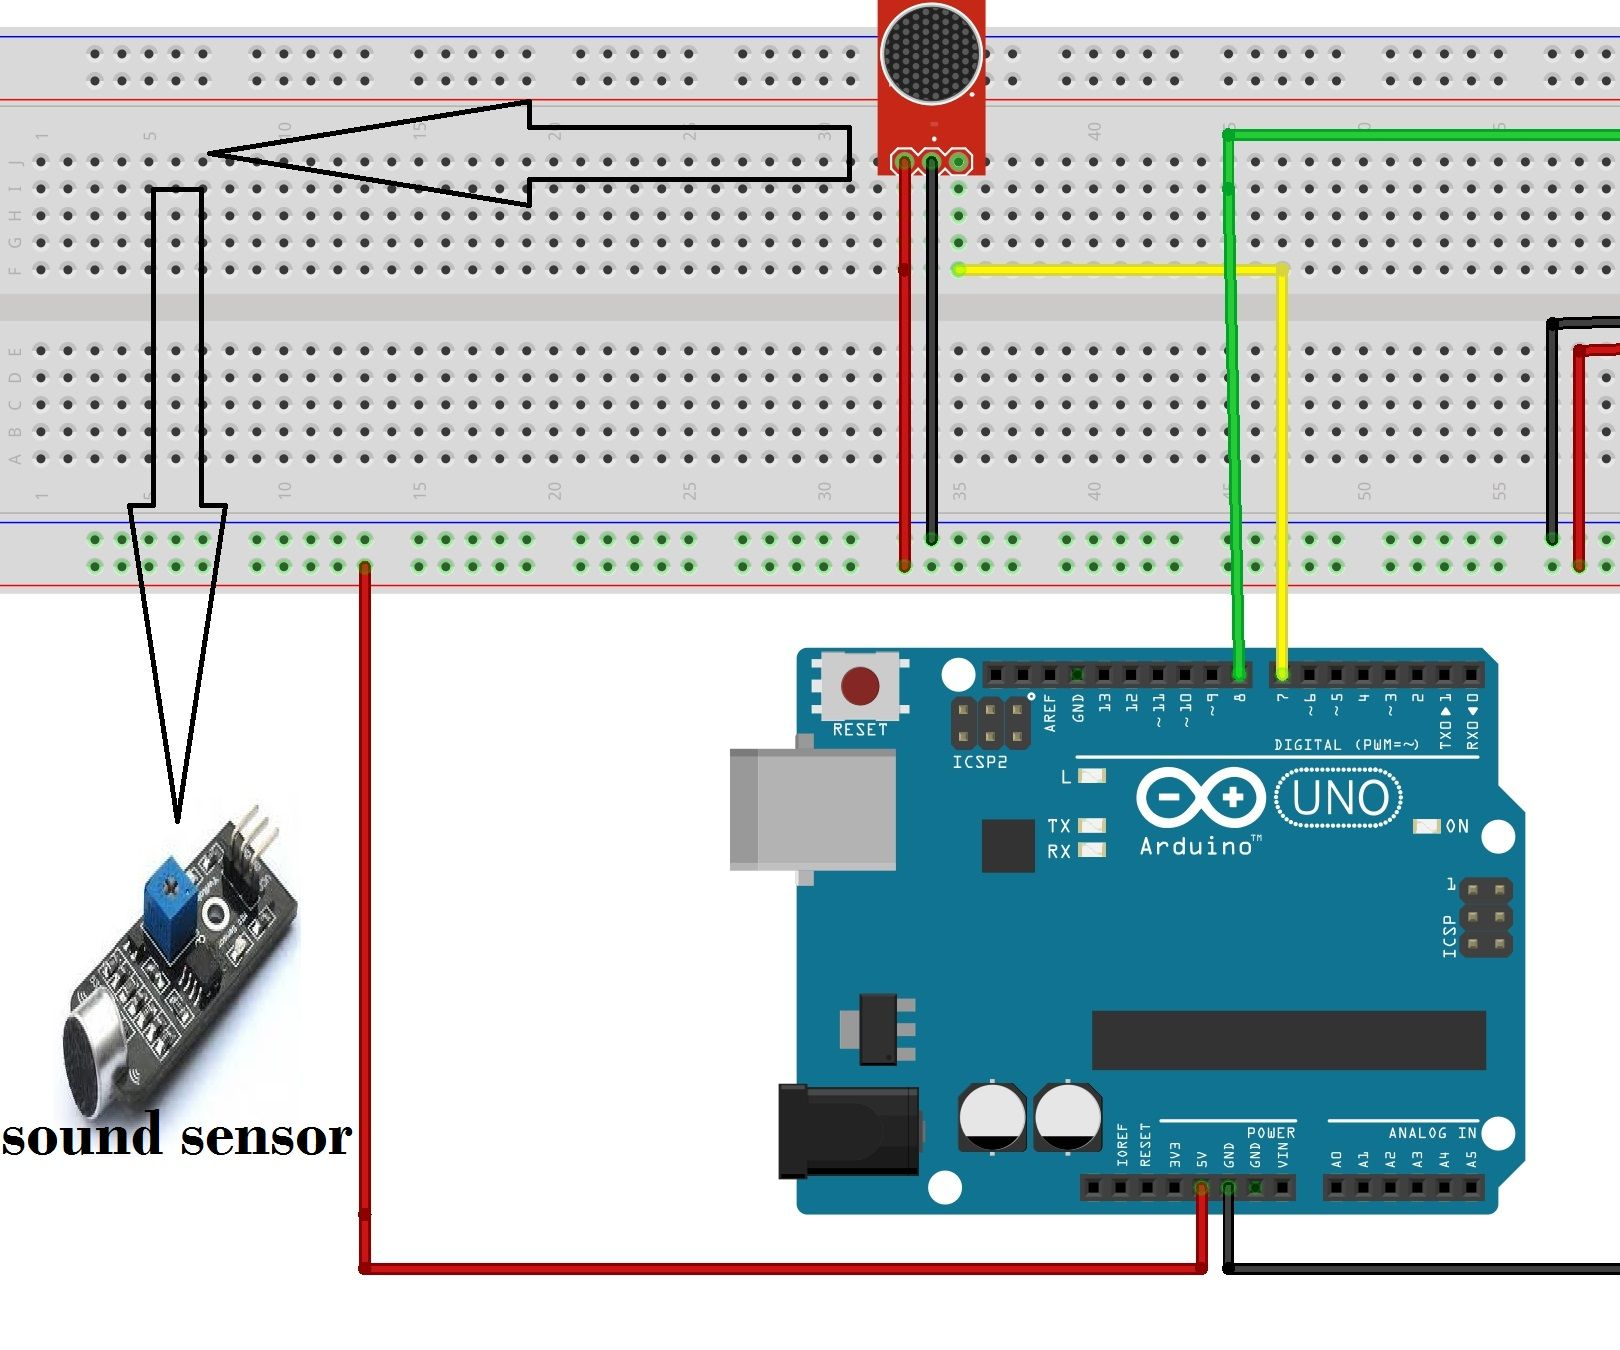 How to turn ON AC light and Fan by clap using Arduino and sound sensor